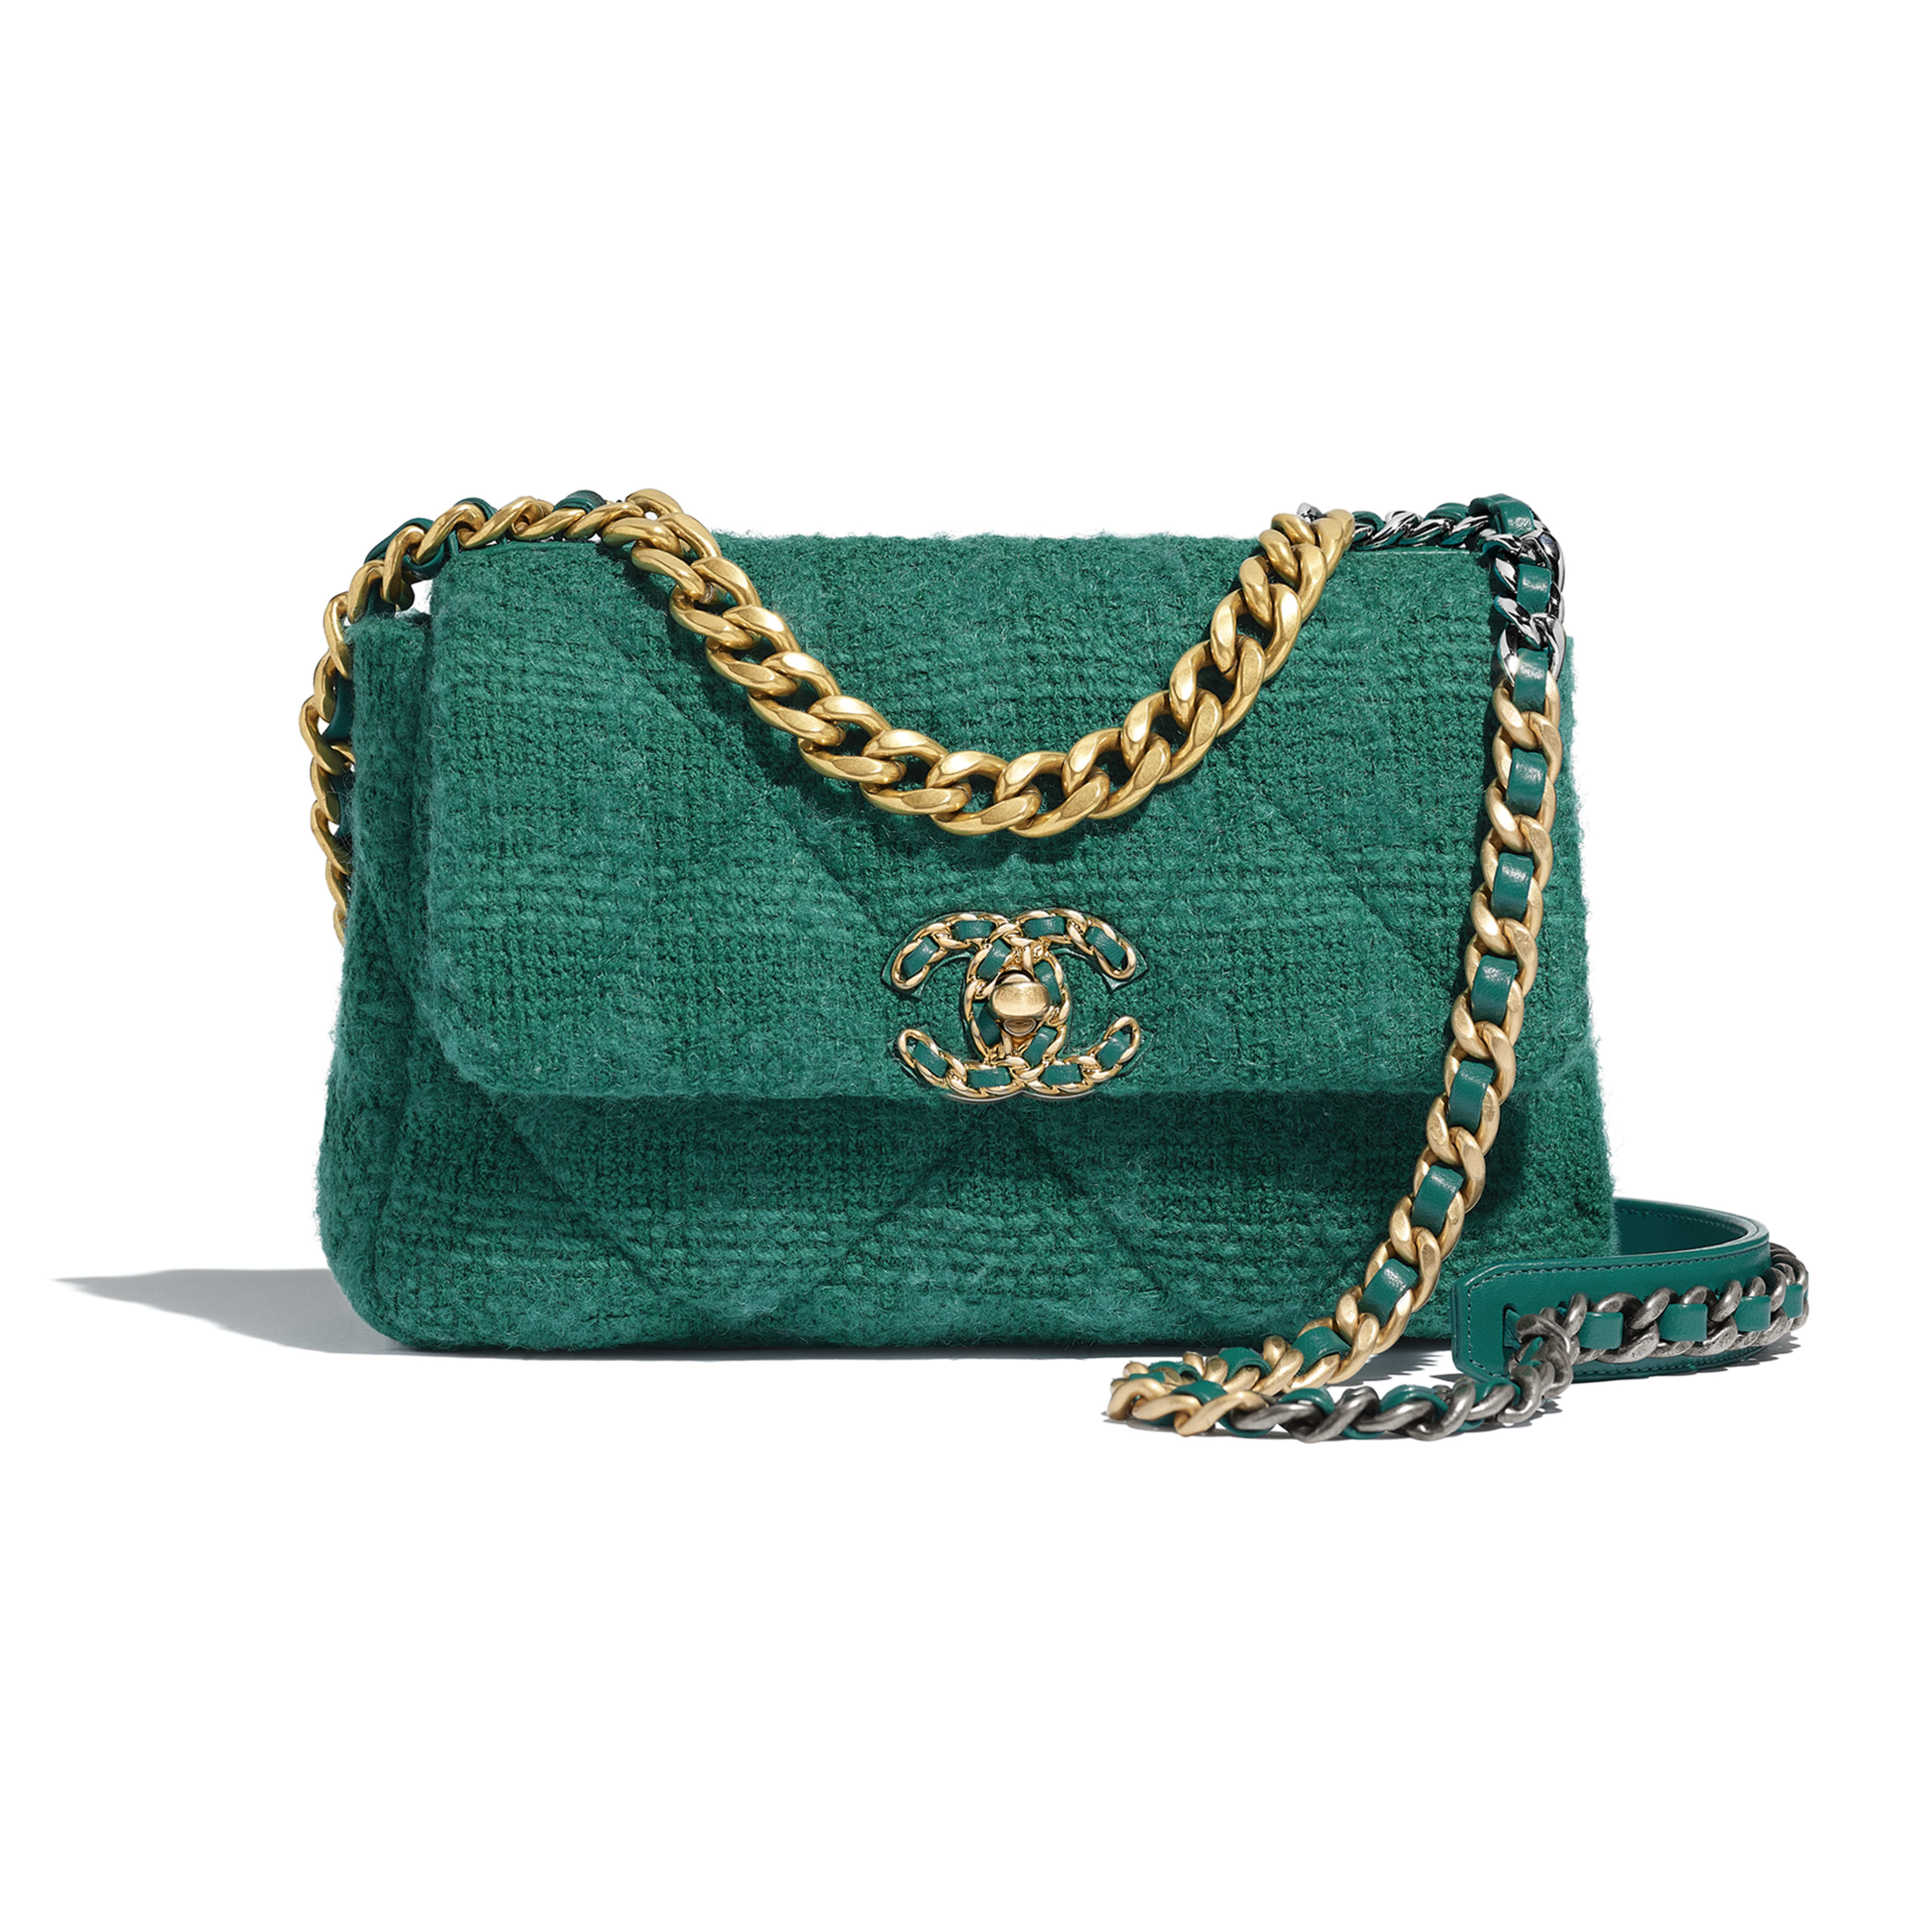 CHANEL 19 Flap Bag - Green - Wool Tweed, Gold-Tone, Silver-Tone & Ruthenium-Finish Metal - Default view - see full sized version